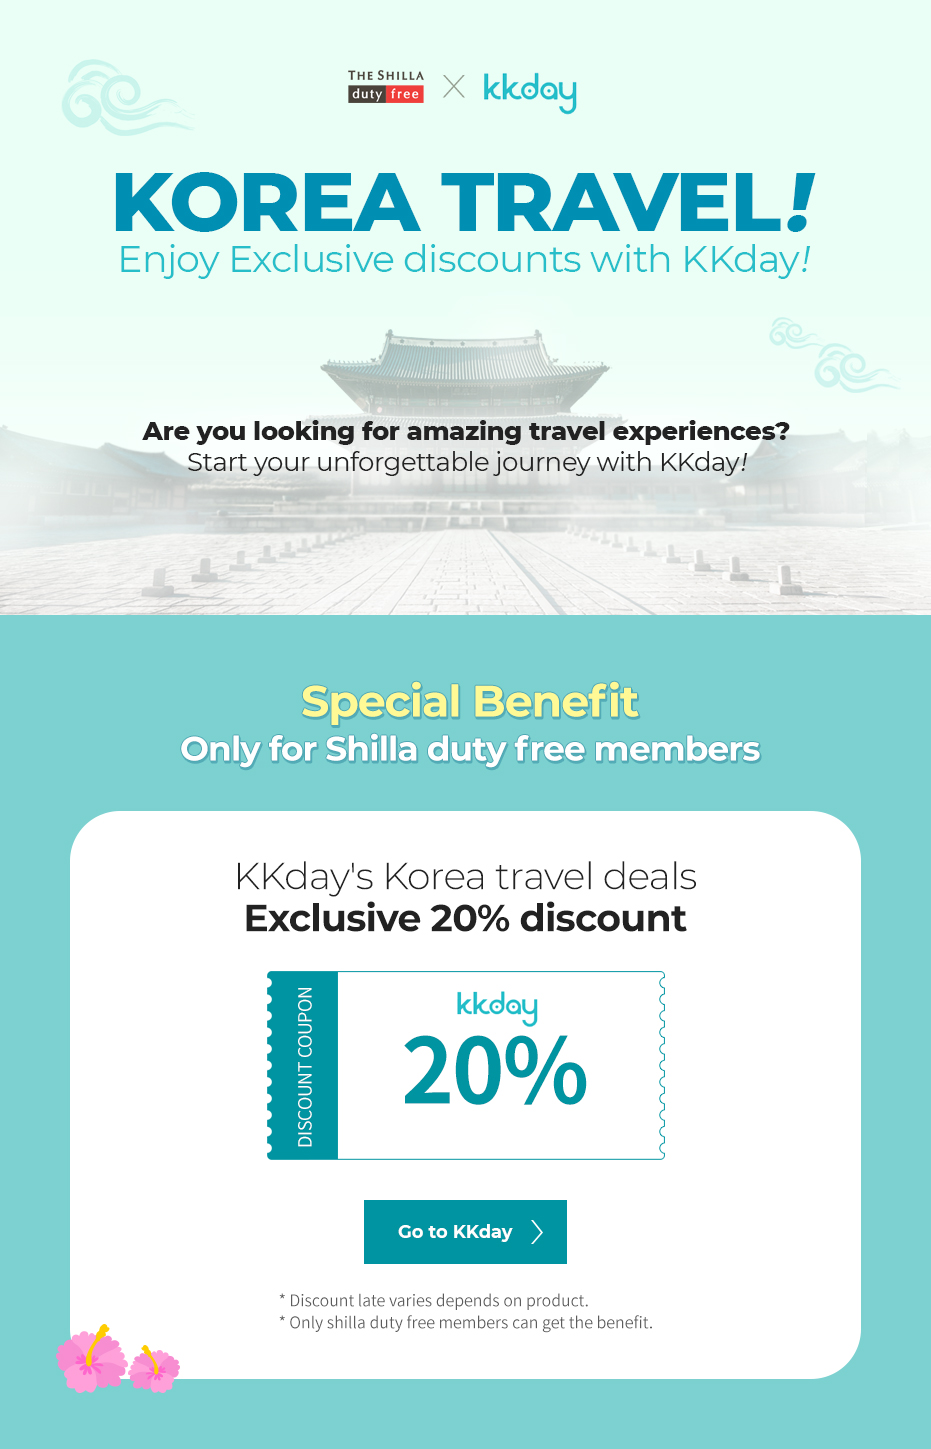 KOREA TRAVEL! Enjoy Exclusive discounts with KKday!